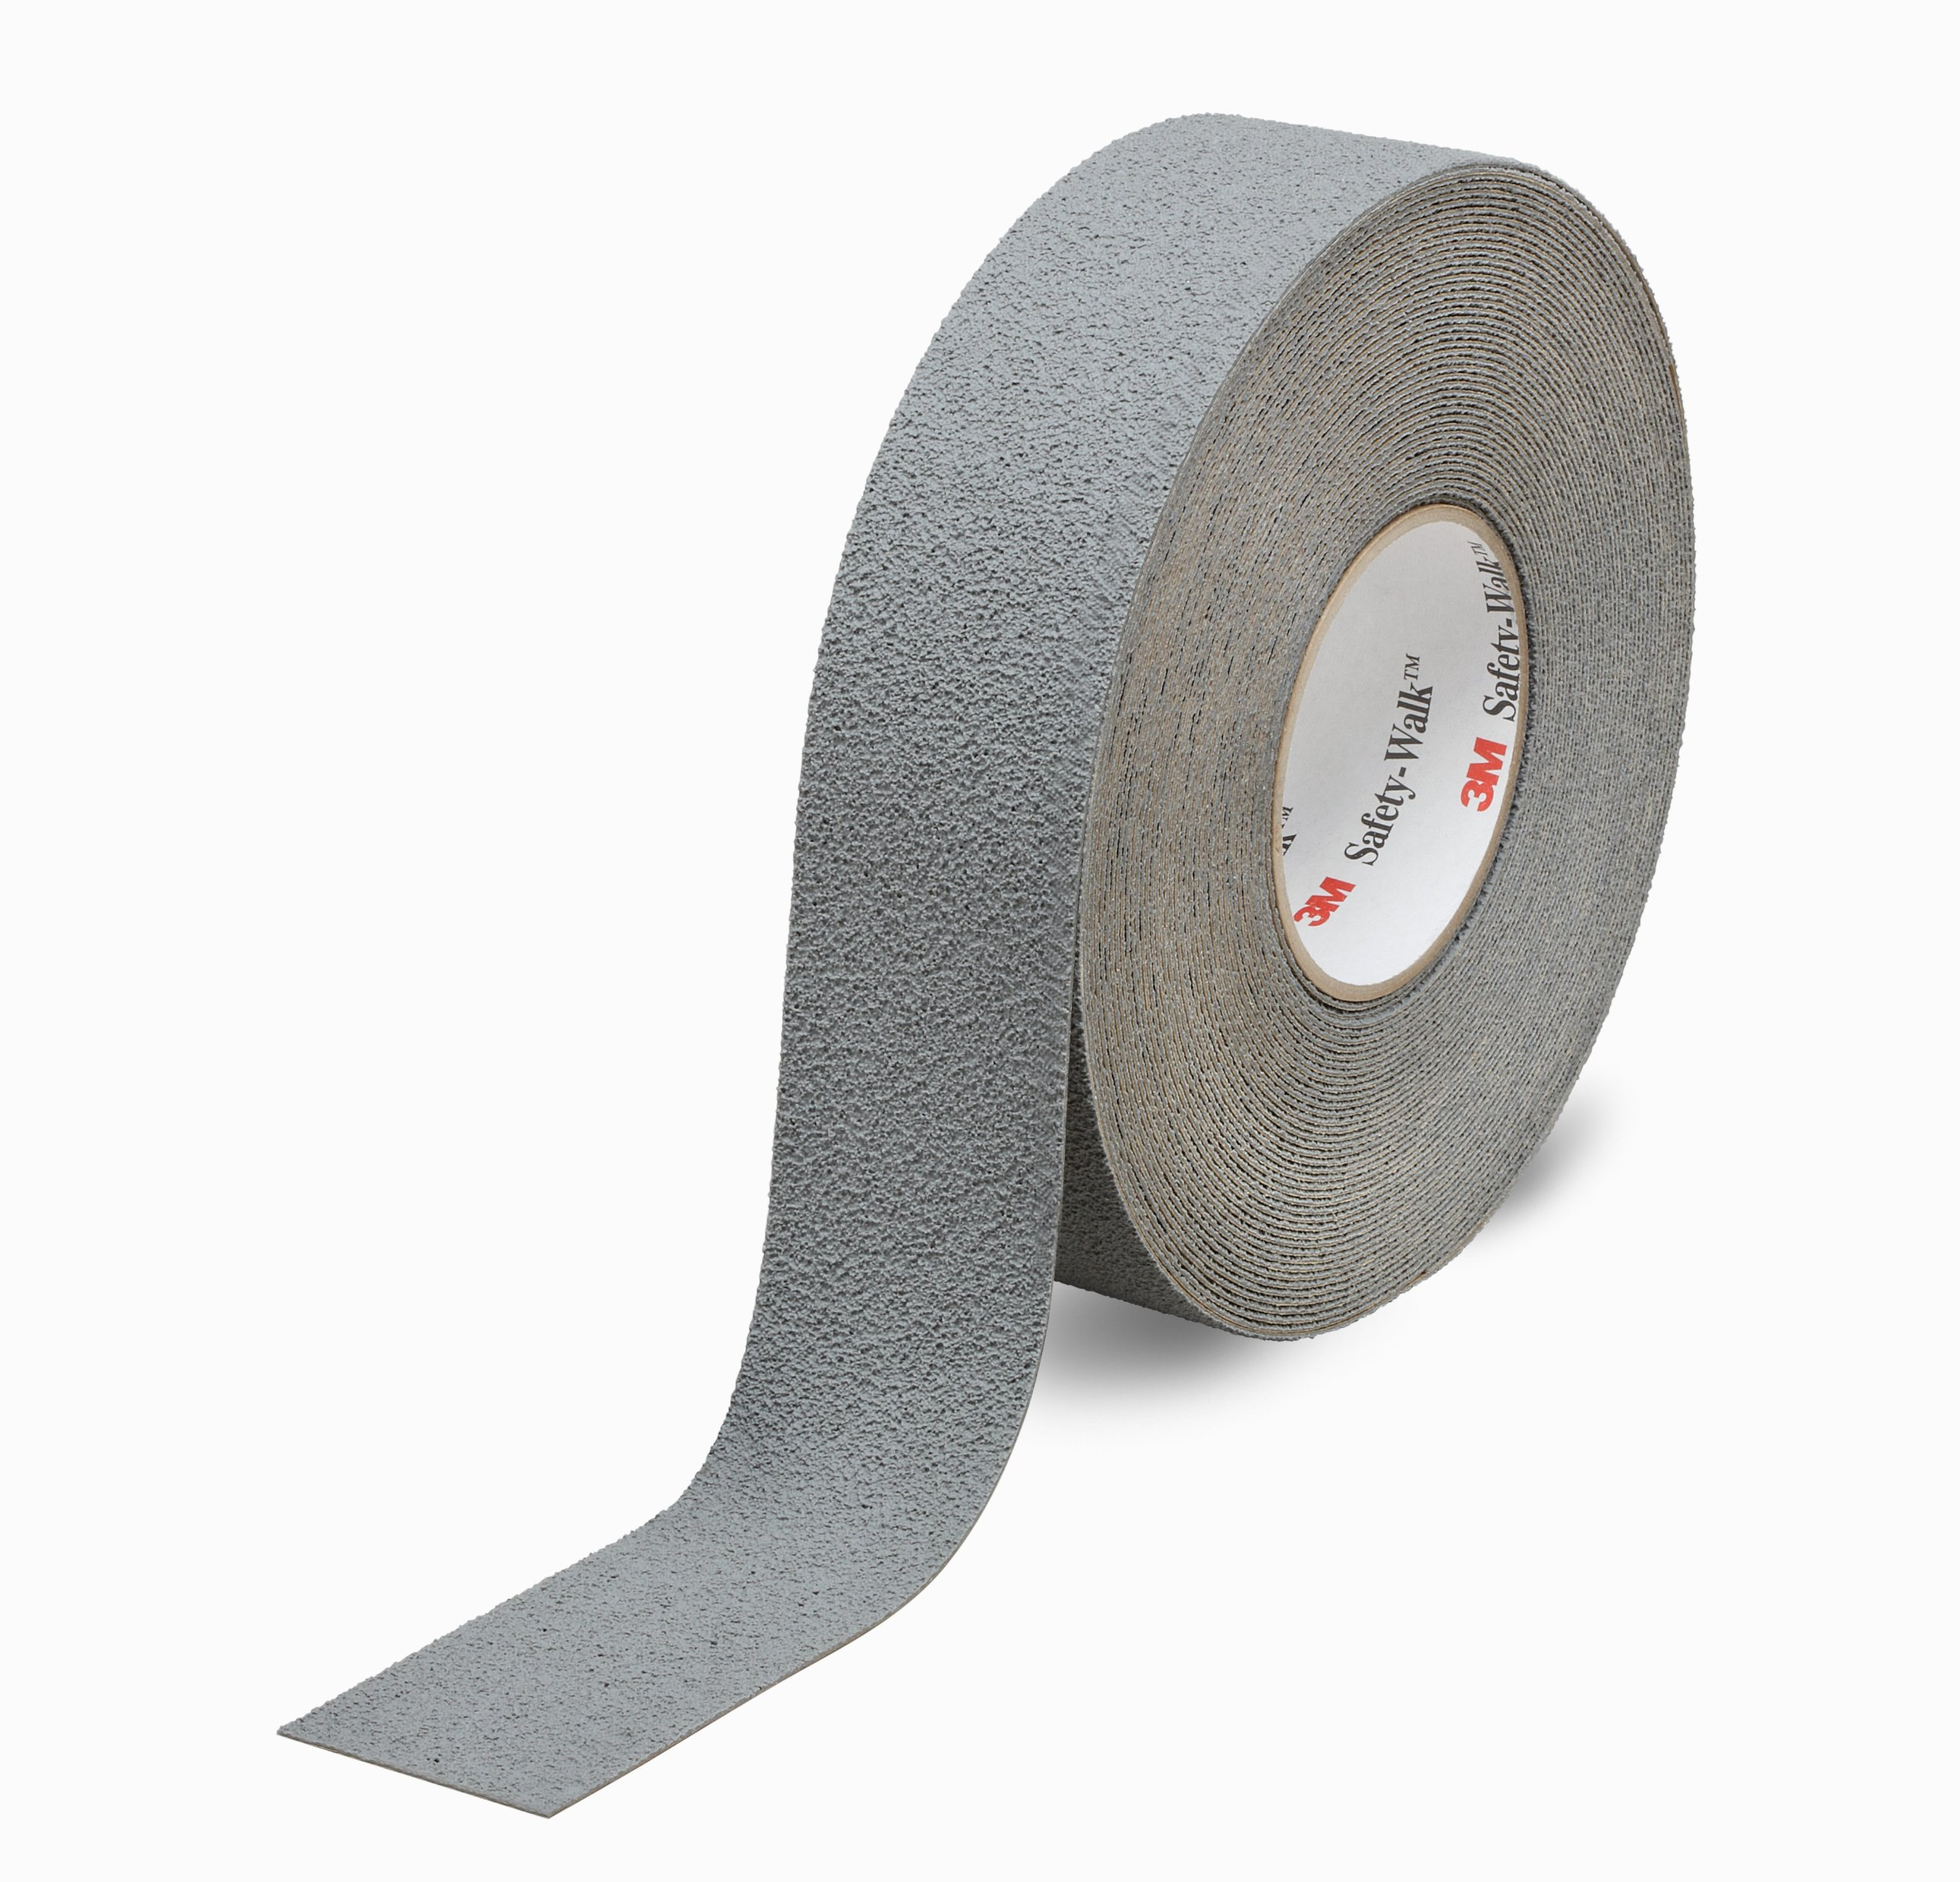 3M Safety-Walk Slip-Resistant Medium Resilient Tapes and Treads 370, Gray, 4'' Width, 60' Length (Pack of 1 Roll)